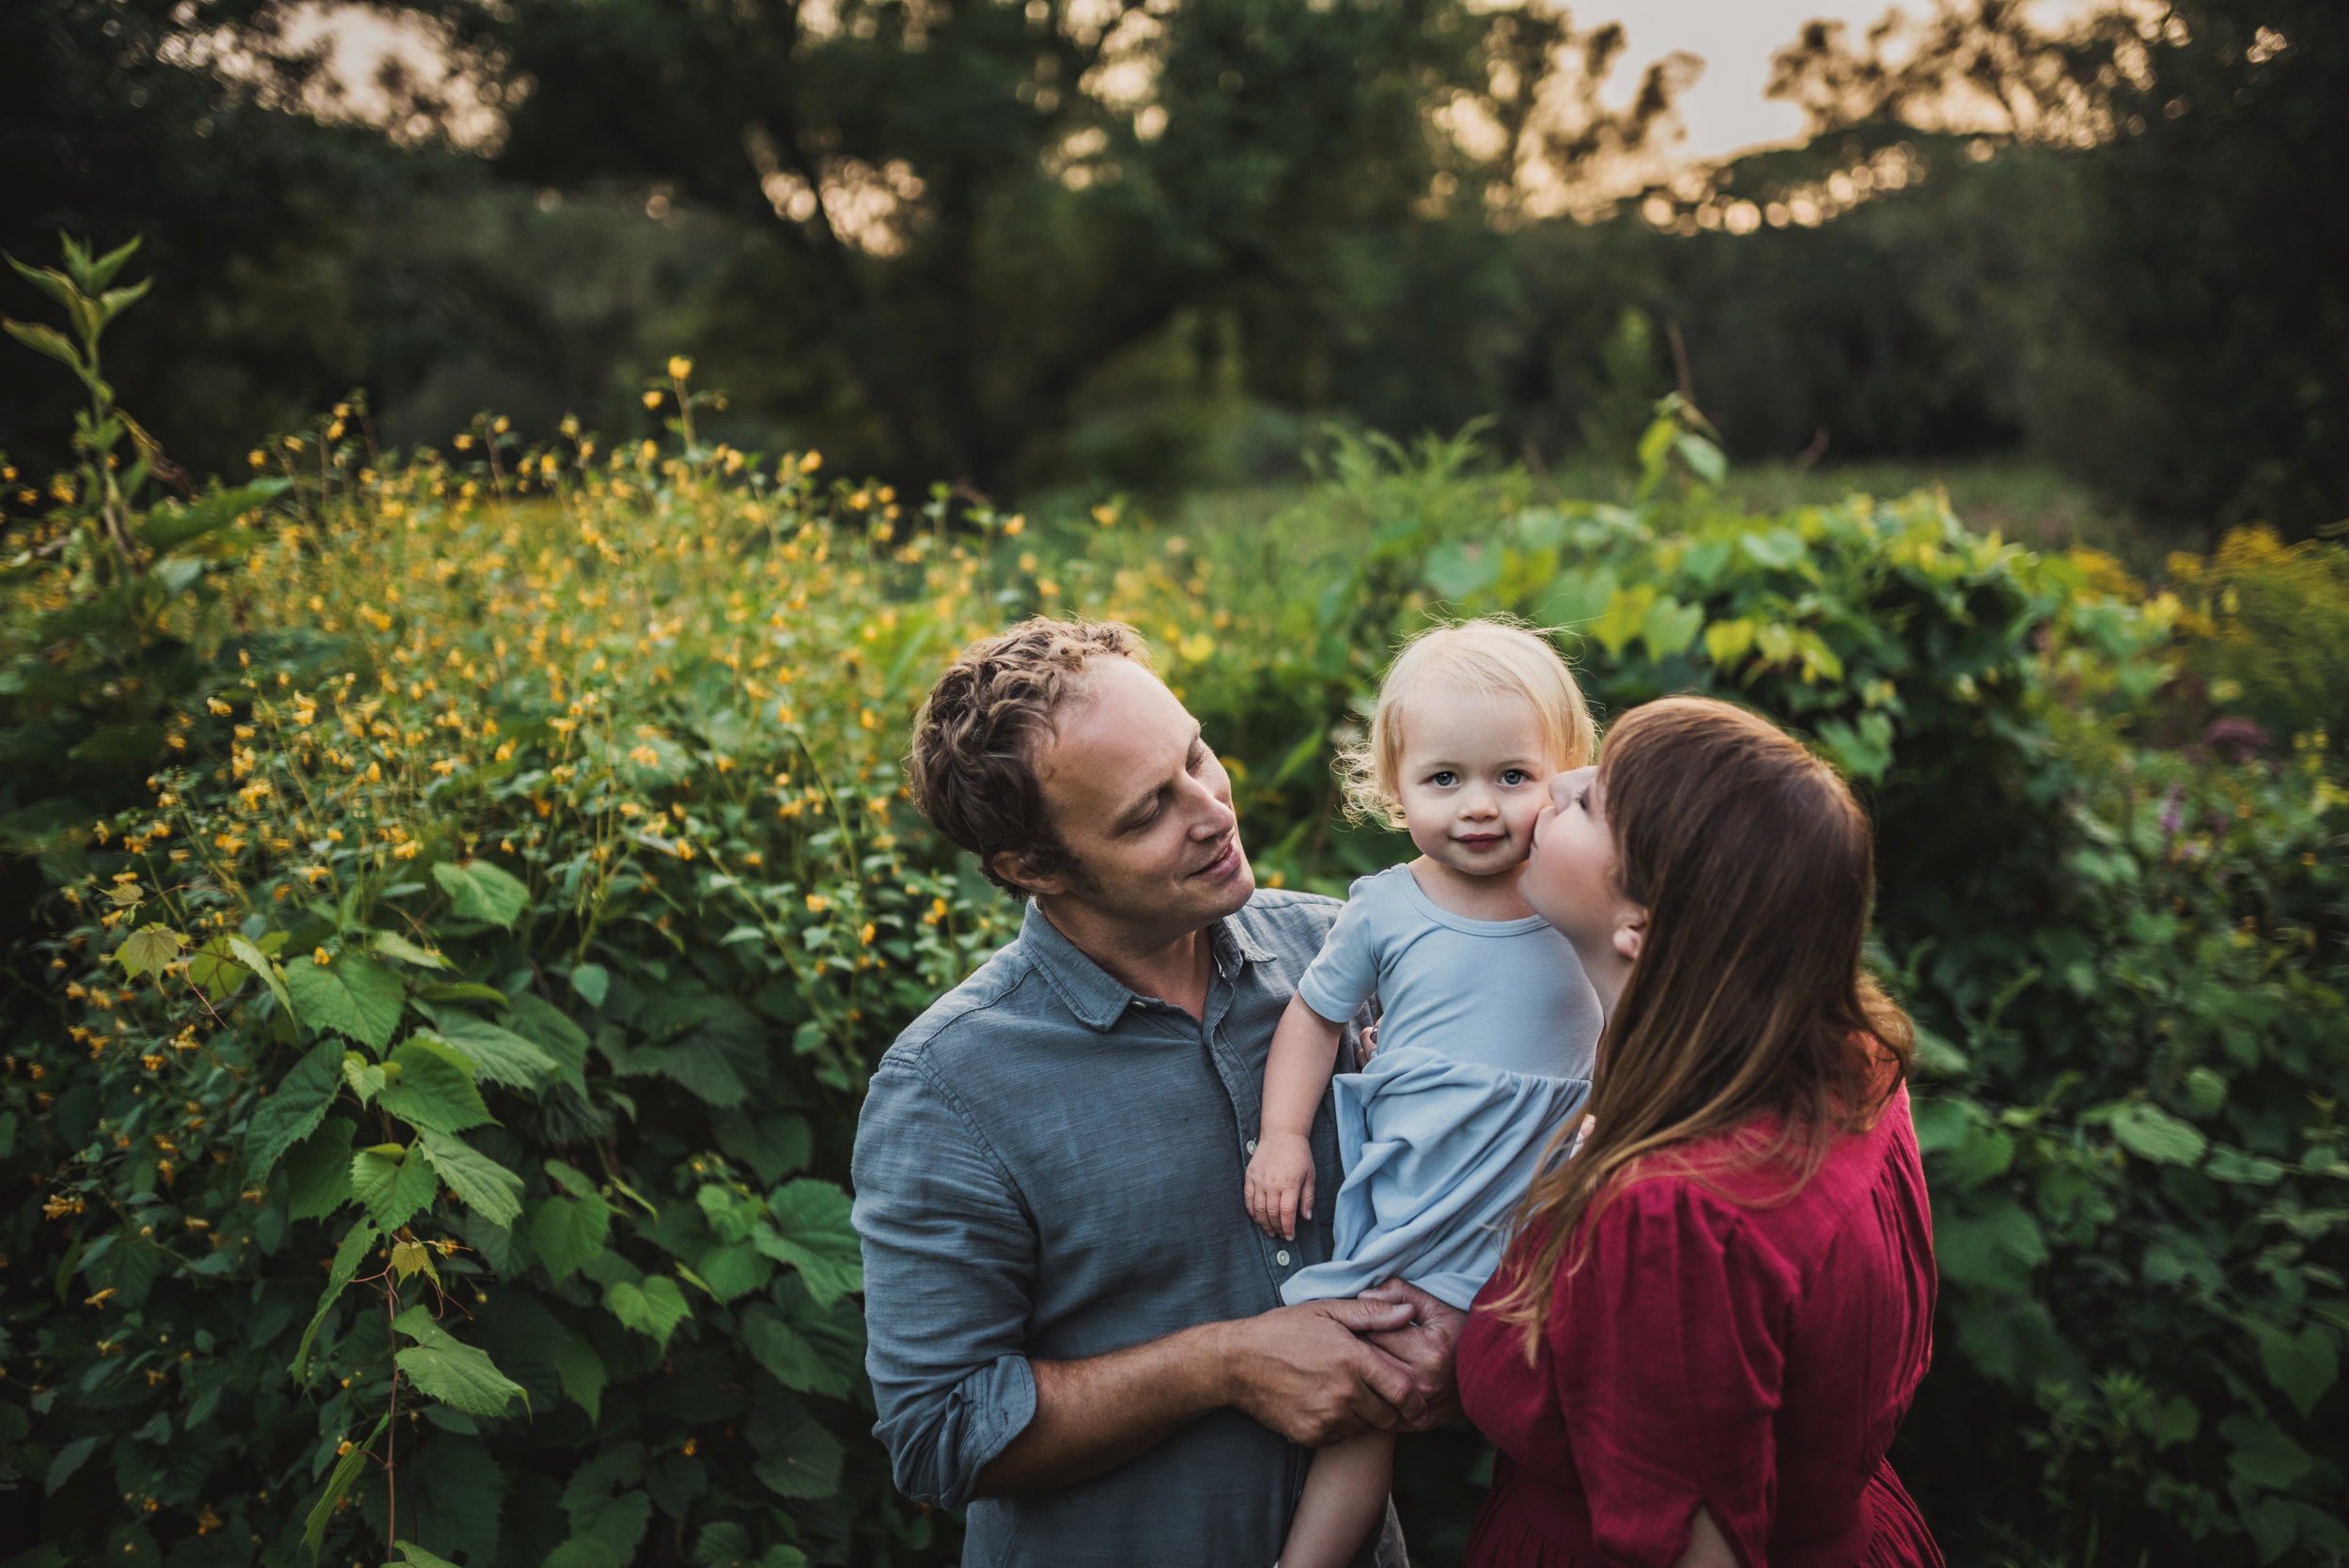 Unposed and Beautifully Natural Family Portrait Photos in Boston, MA